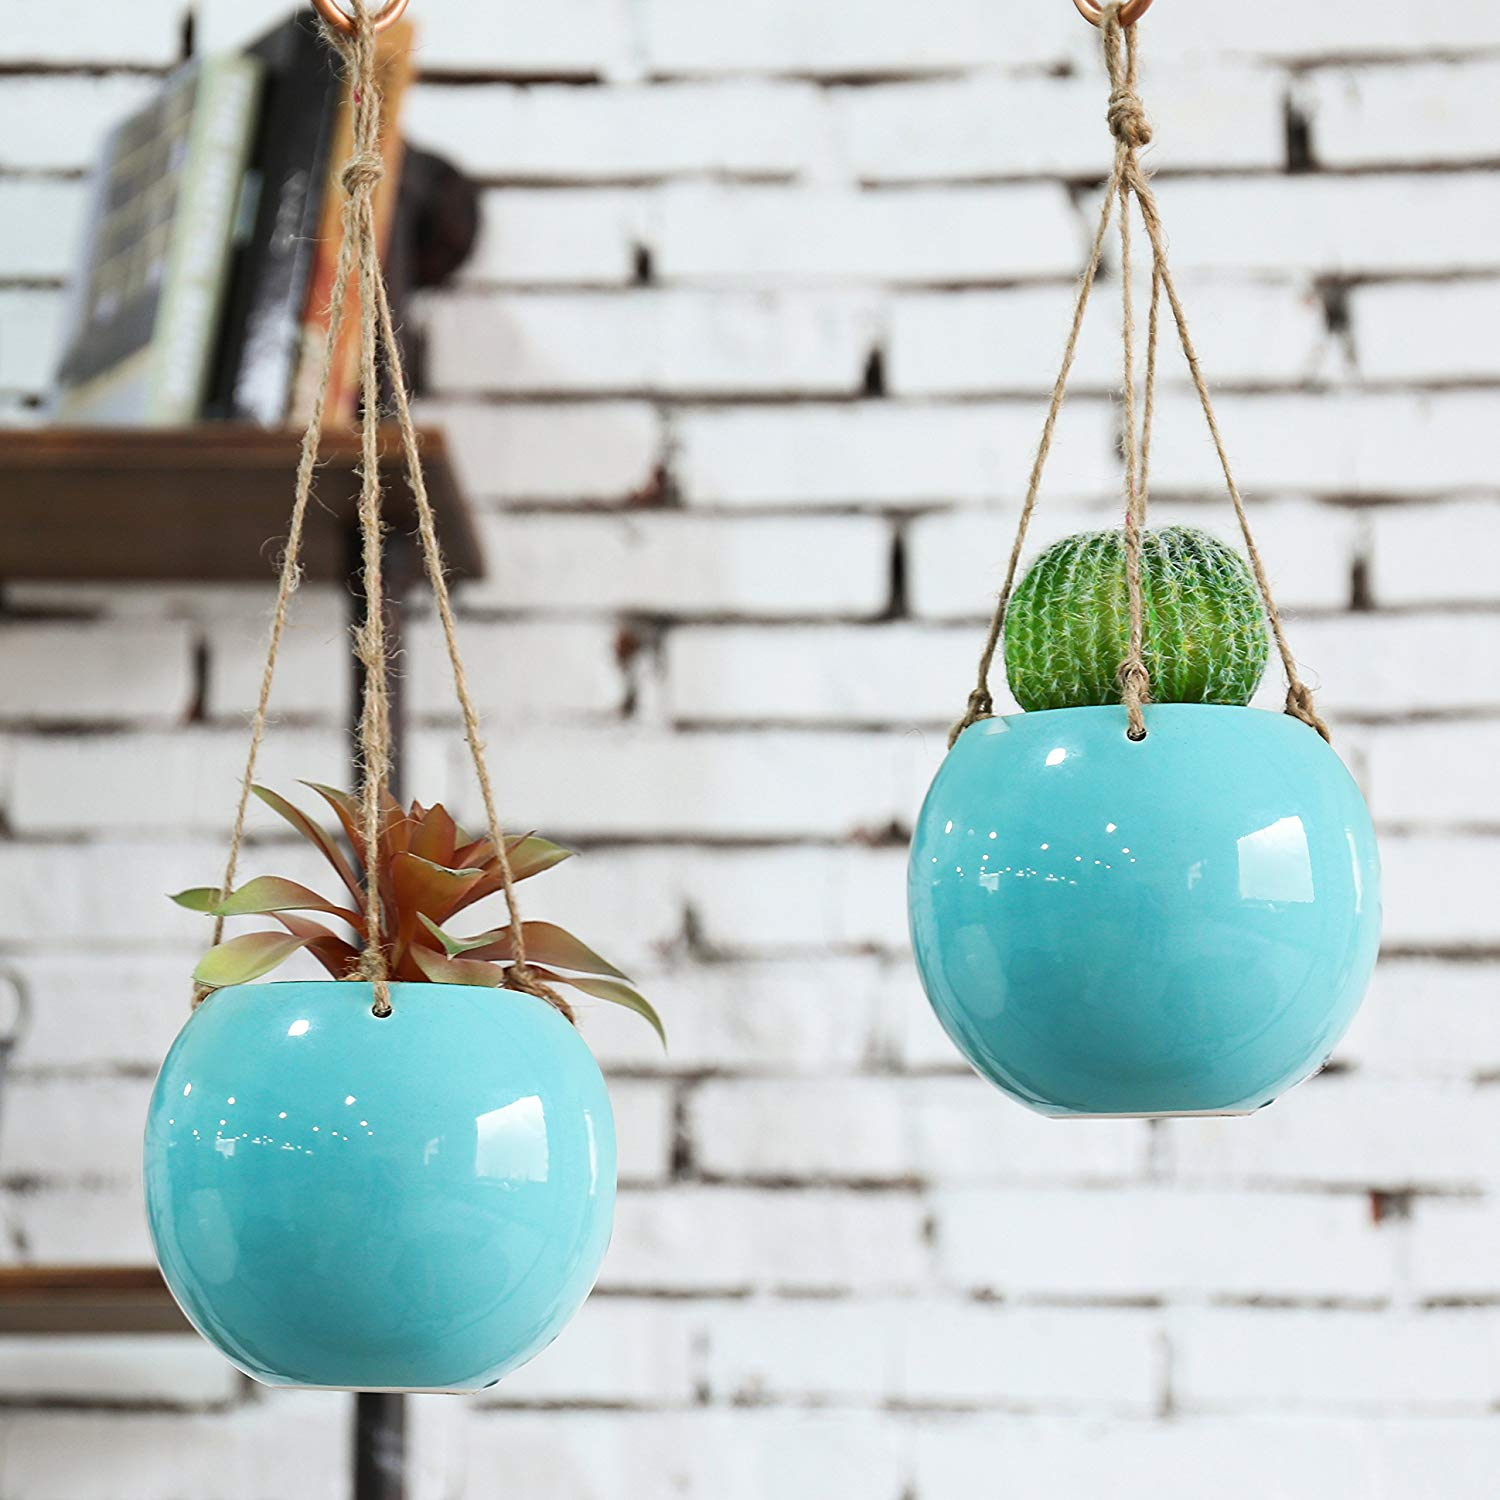 MyGift Set of 2 Aqua Blue Ceramic Hanging Mini Planters with Twine Ropes